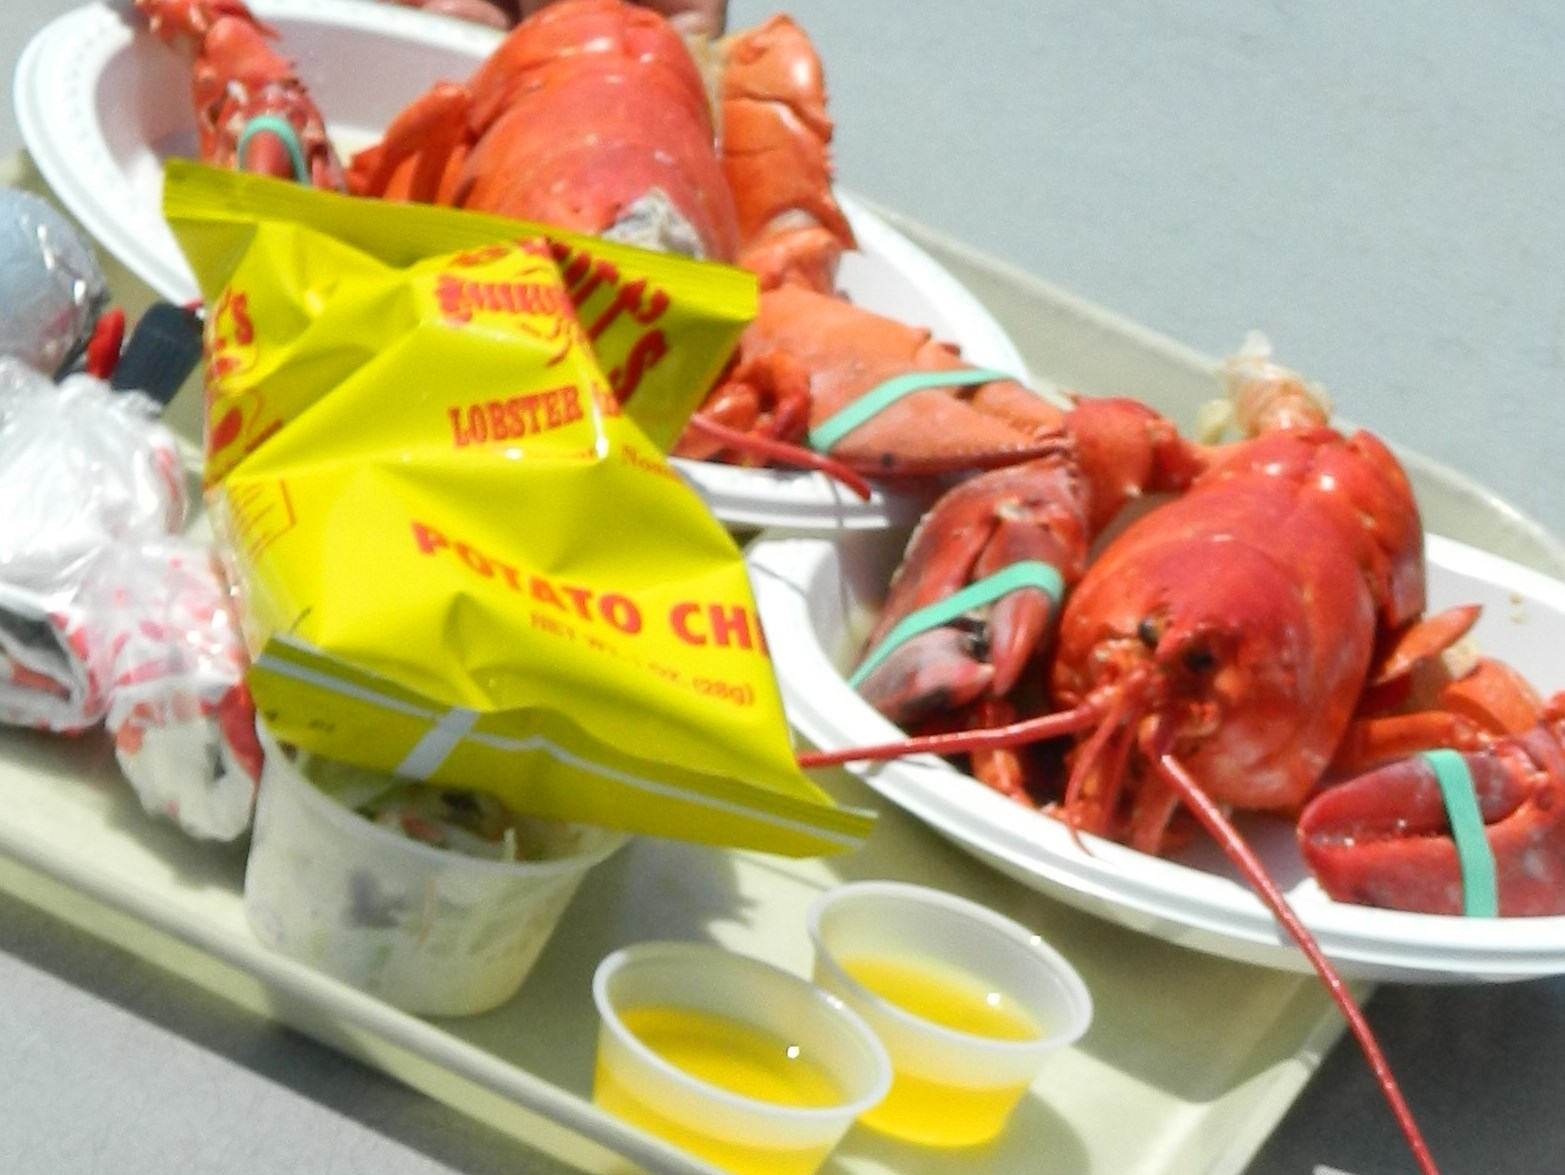 Who Could Pass Up Steamed And Scculent Lobster Dinners At Abbotts In Noank